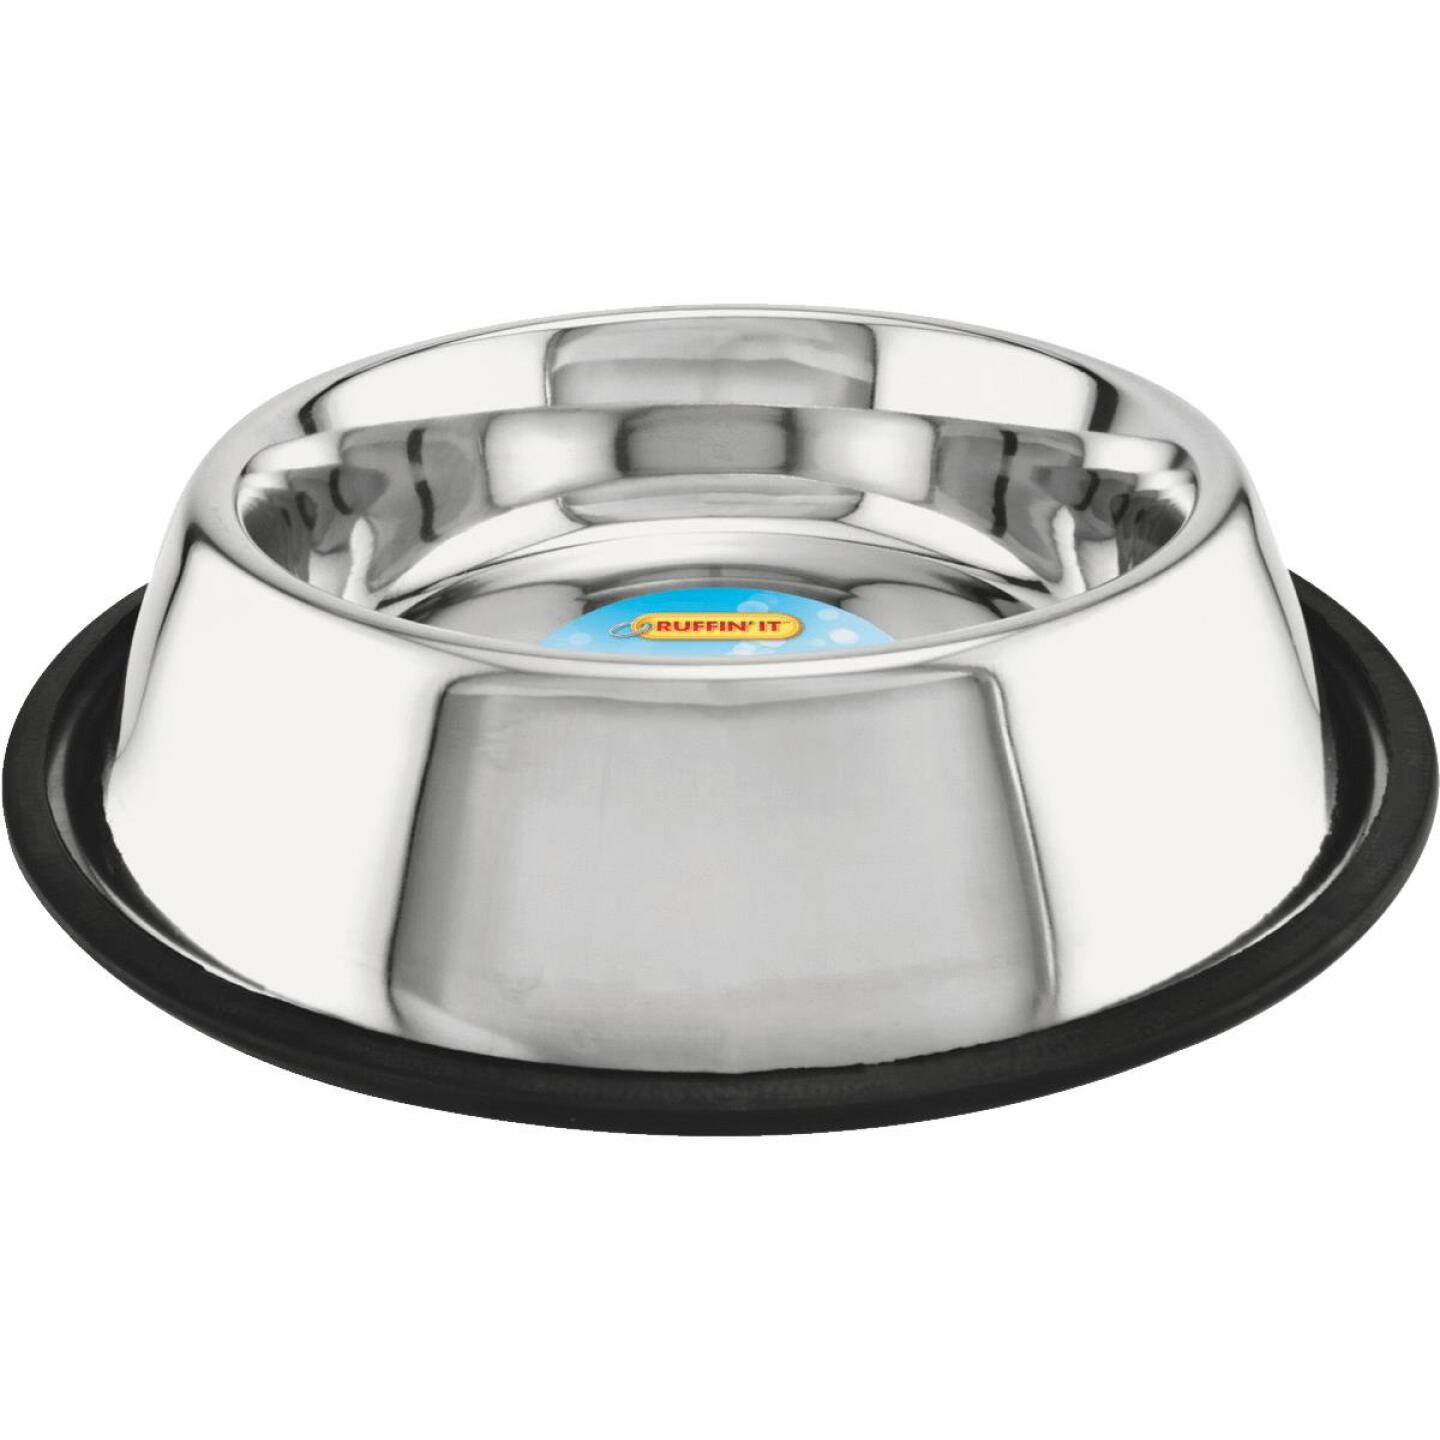 Westminster Pet Ruffin' it Stainless Steel Round 32 Oz. No Skid Pet Food Bowl Image 1